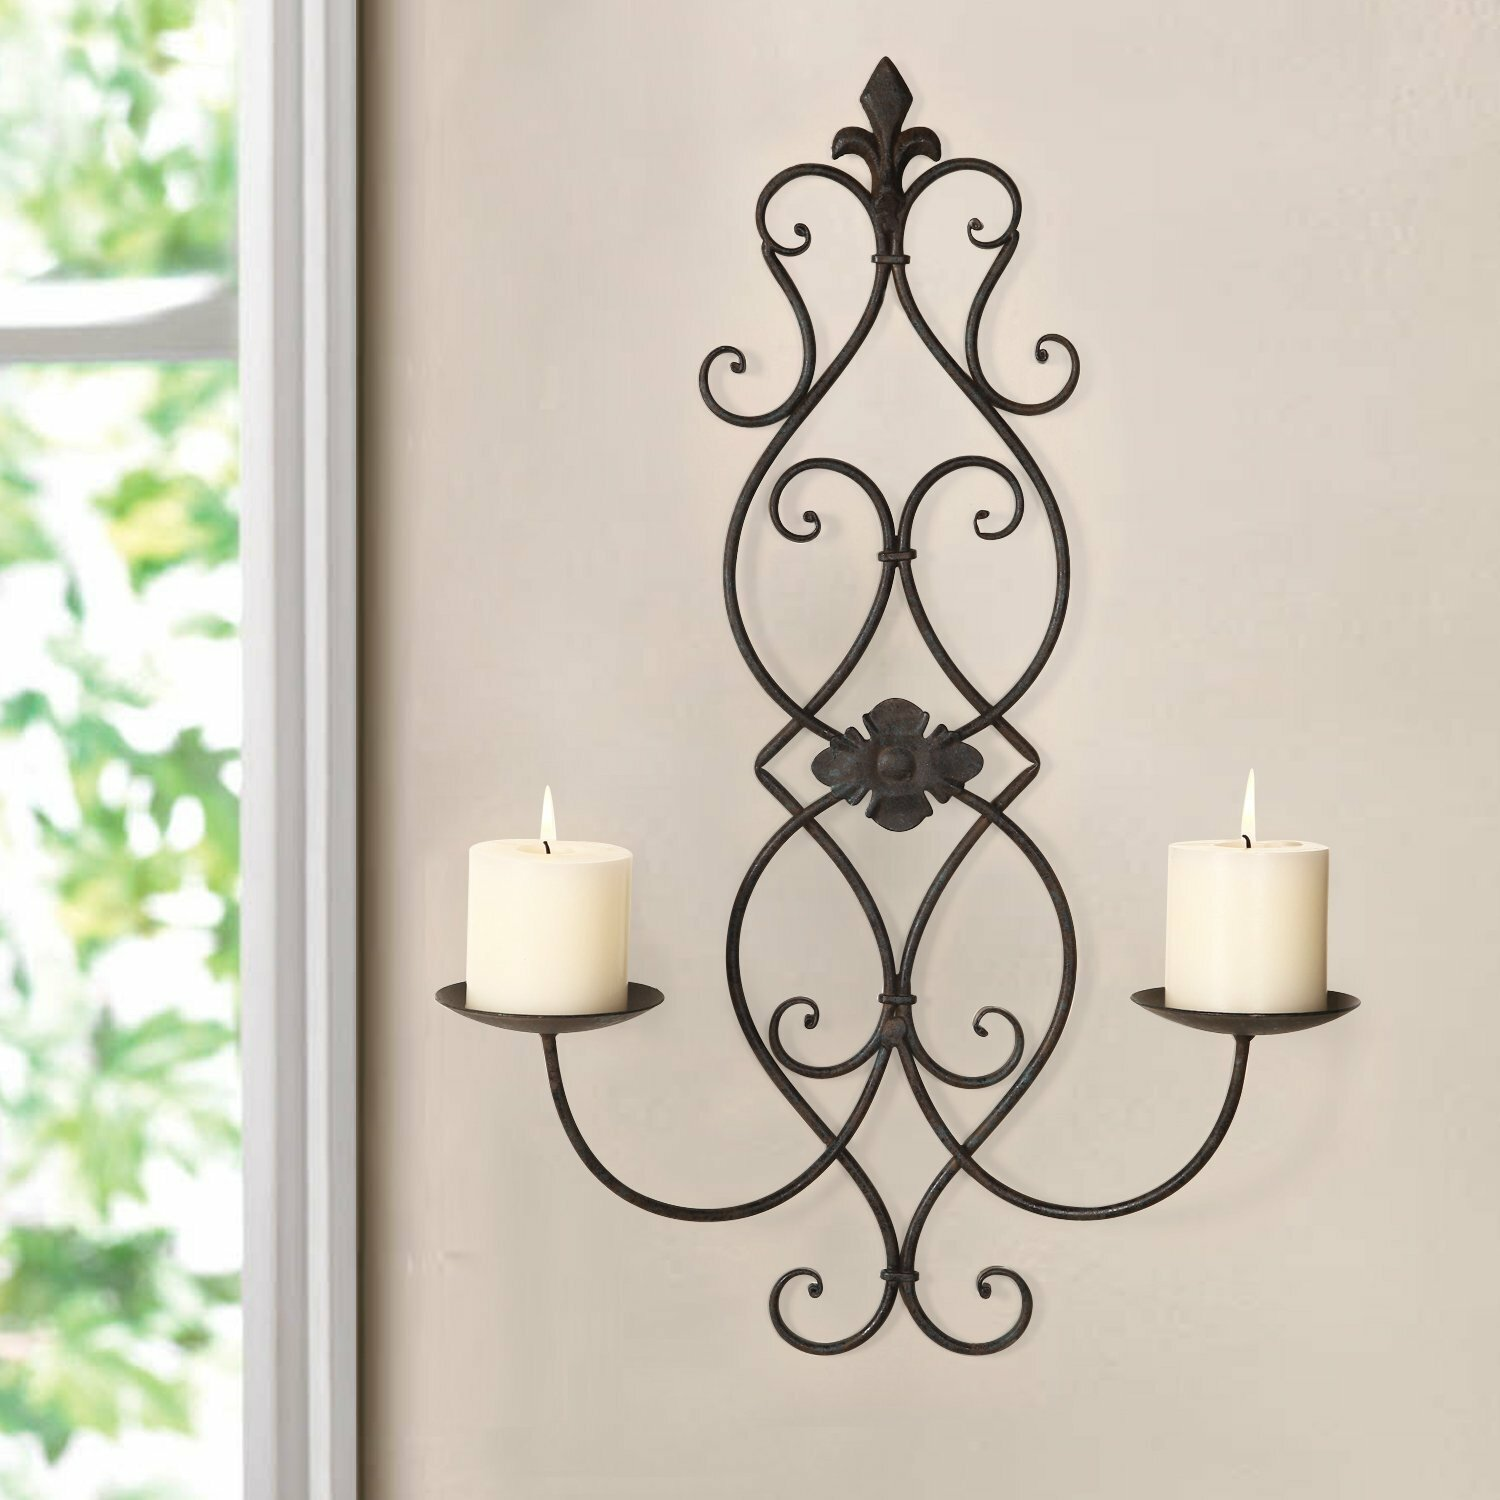 Adeco Trading Iron Wall Sconce Candle Holder eBay